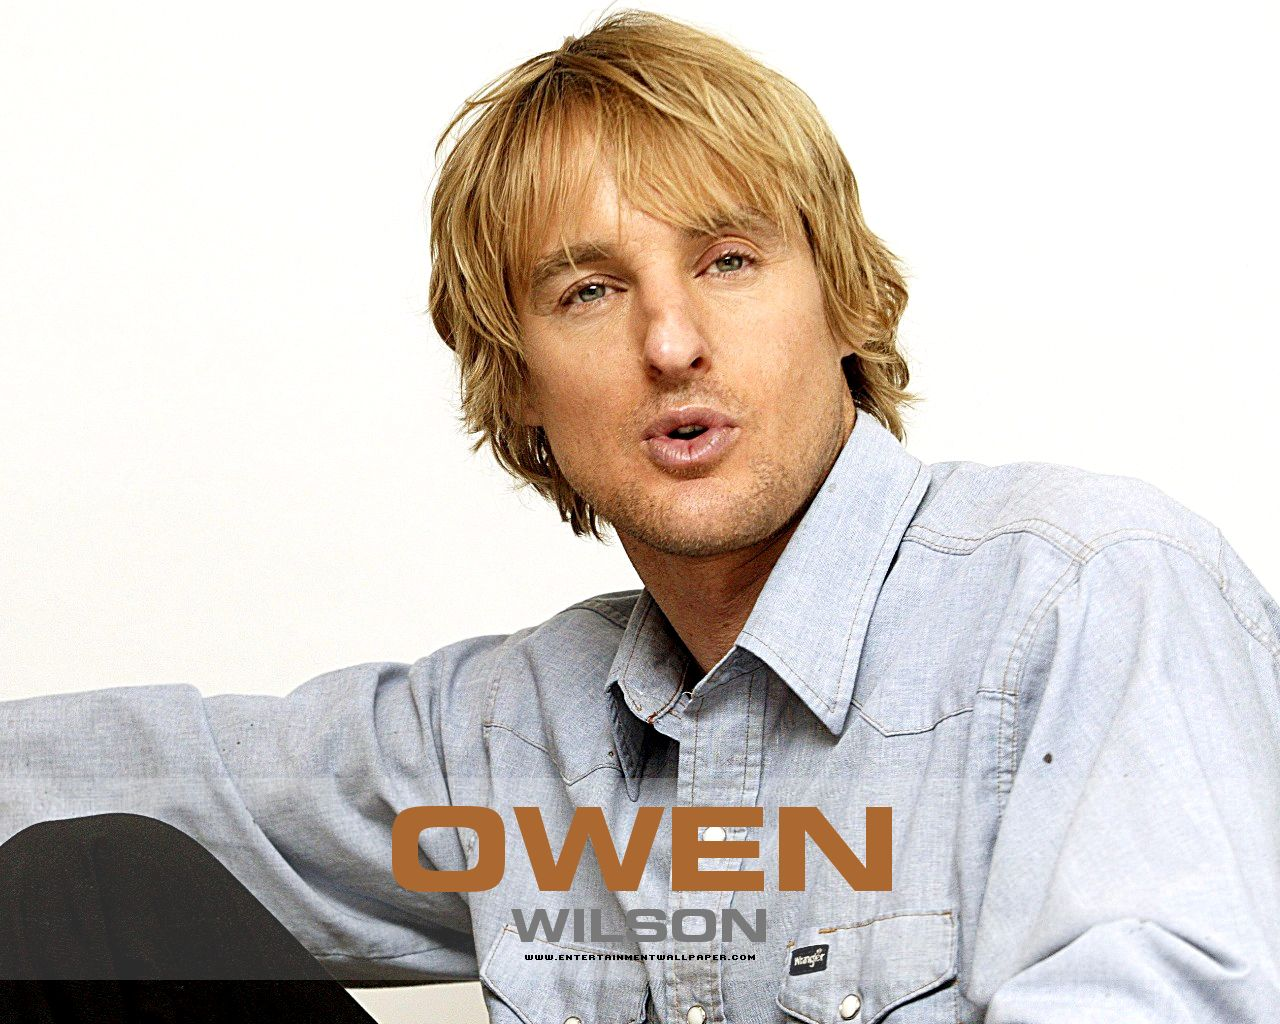 Images Of Cute Heart Wallpapers Wallpapers Designs Owen Wilson New Photos